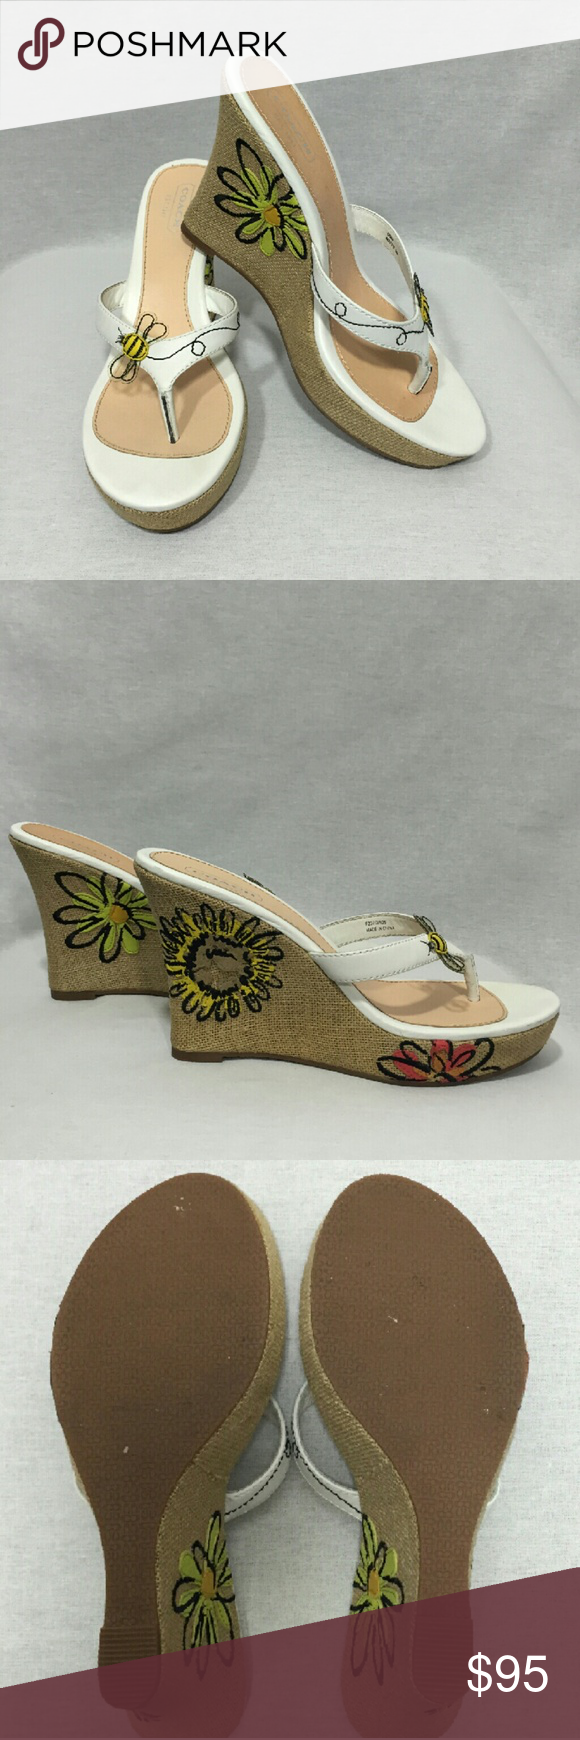 """Coach """"Mattie"""" Wedge Sandals Absolutely adorable wedge sandals from Coach. Wedges feature bumble bee with transparent wings on straps and multicolored flowers on wedge, inside and out. 4"""" heel with 1"""" platform. Shoes are in great condition on both the exterior and the soles. Perfect with a sundress or cropped jeans. Coach Shoes Wedges"""